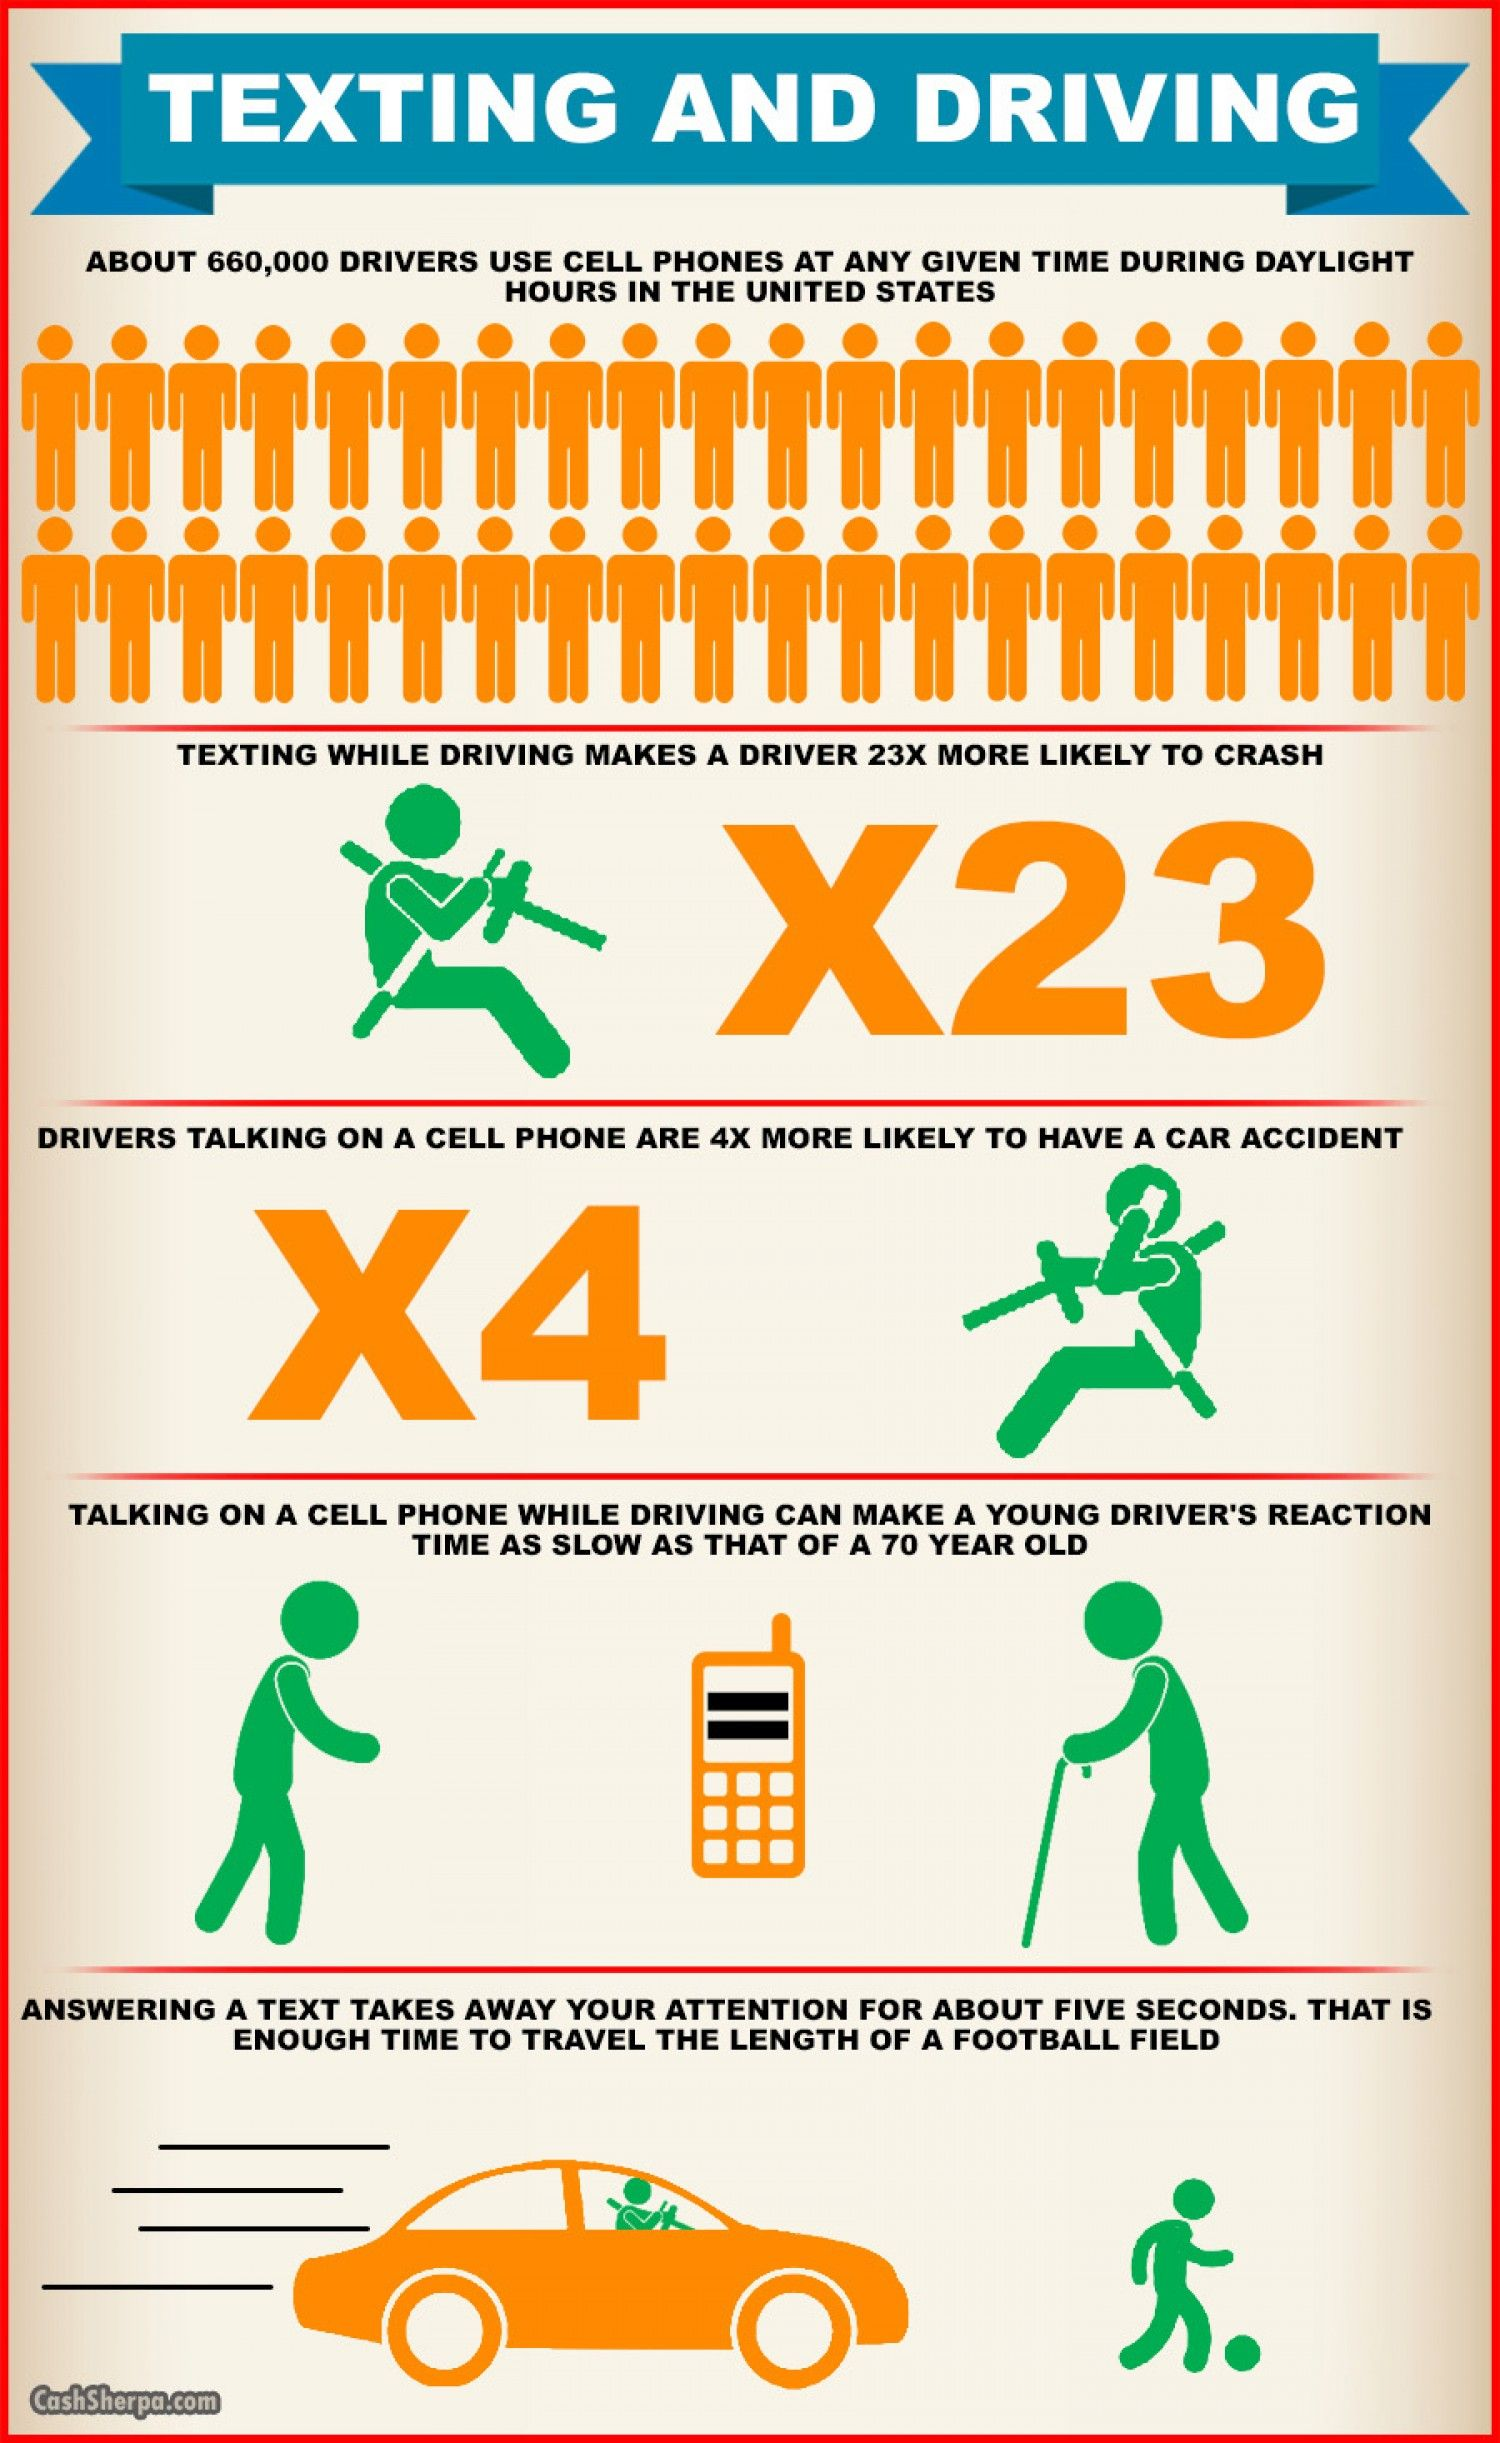 texting and driving infographic infographics  texting and driving infographic